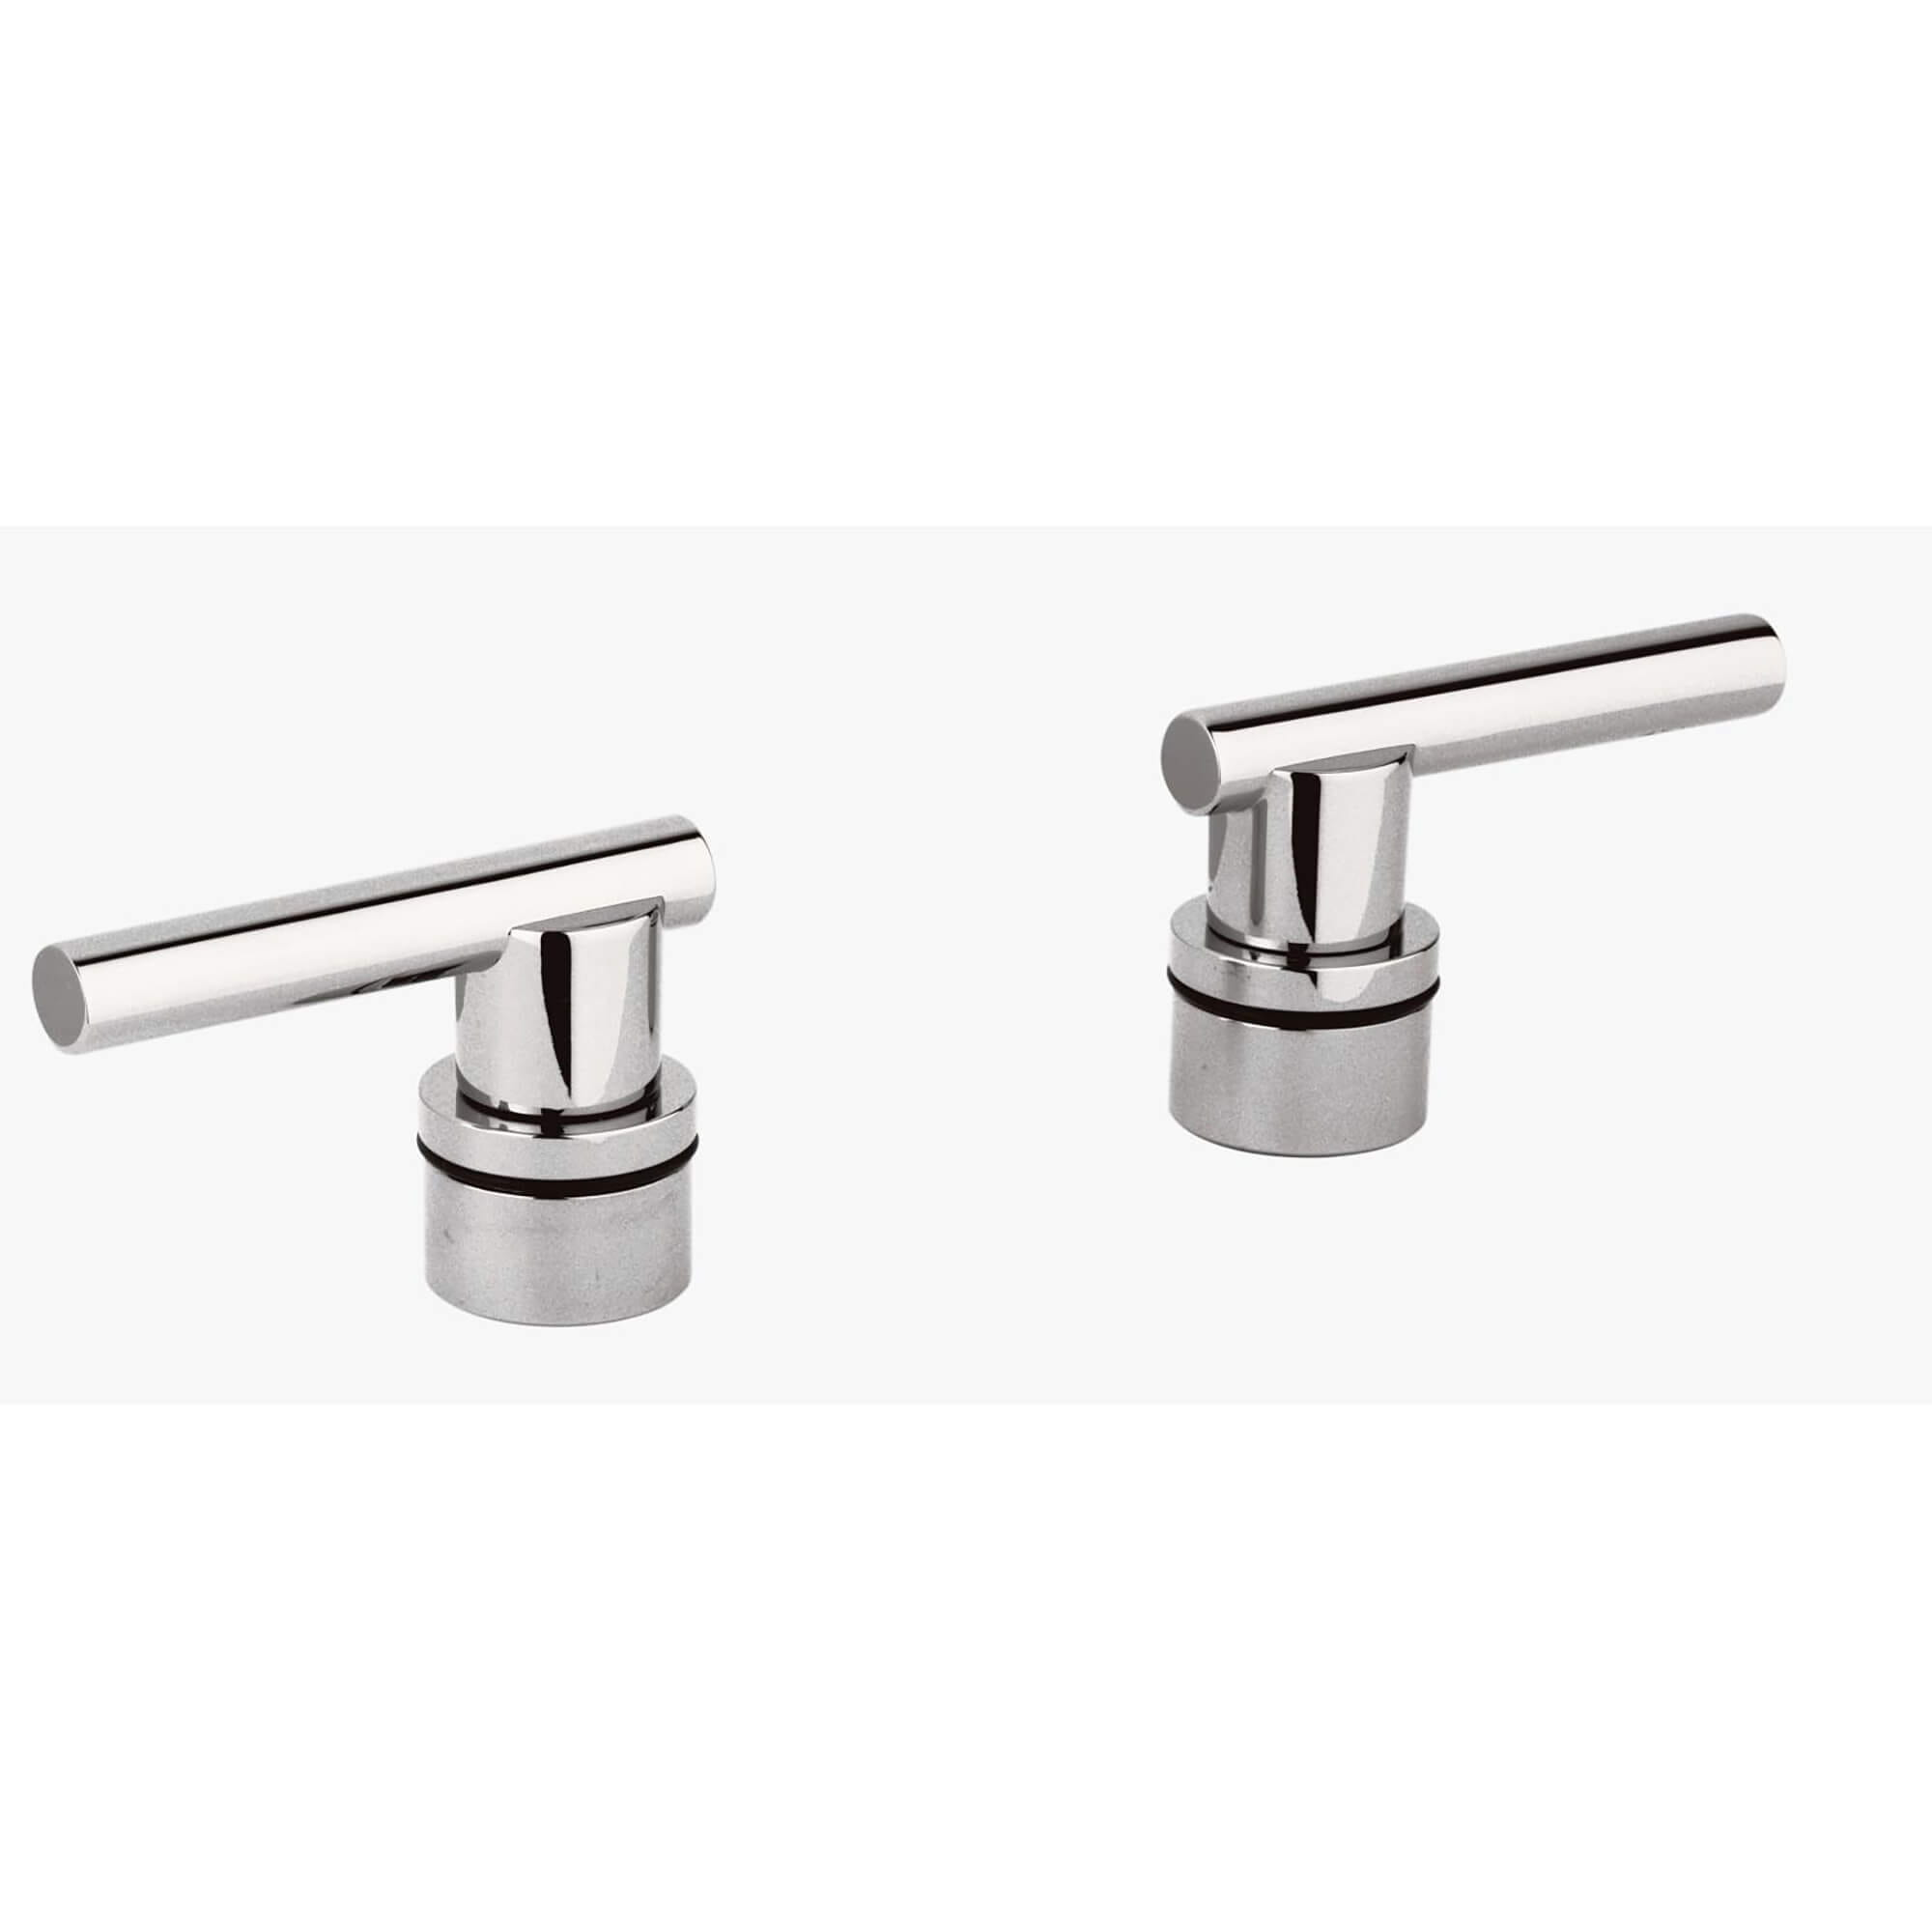 Manettes leviers la paire GROHE POLISHED NICKEL